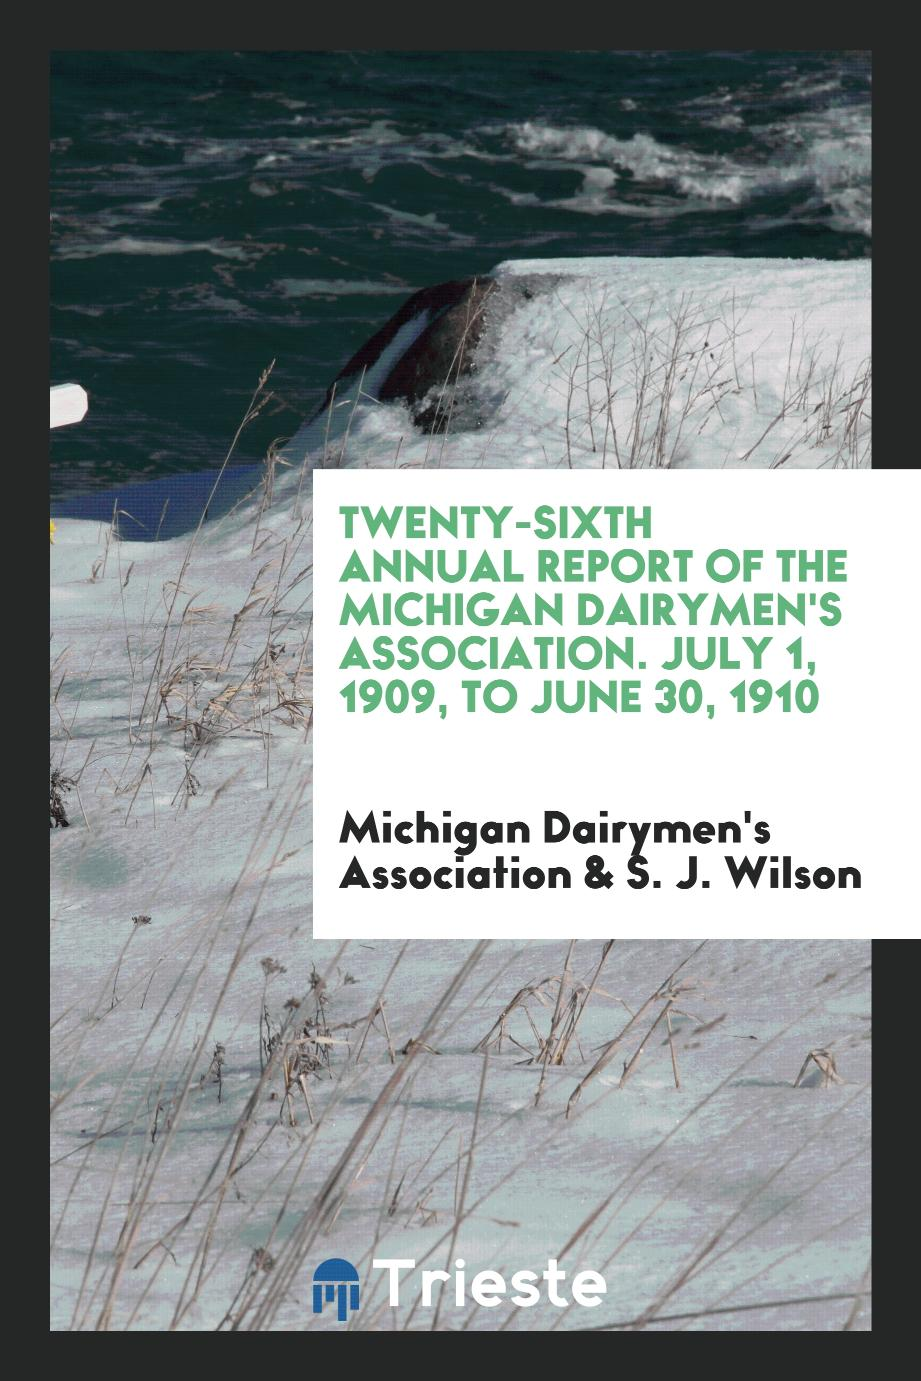 Twenty-Sixth Annual Report of the Michigan Dairymen's Association. July 1, 1909, to June 30, 1910